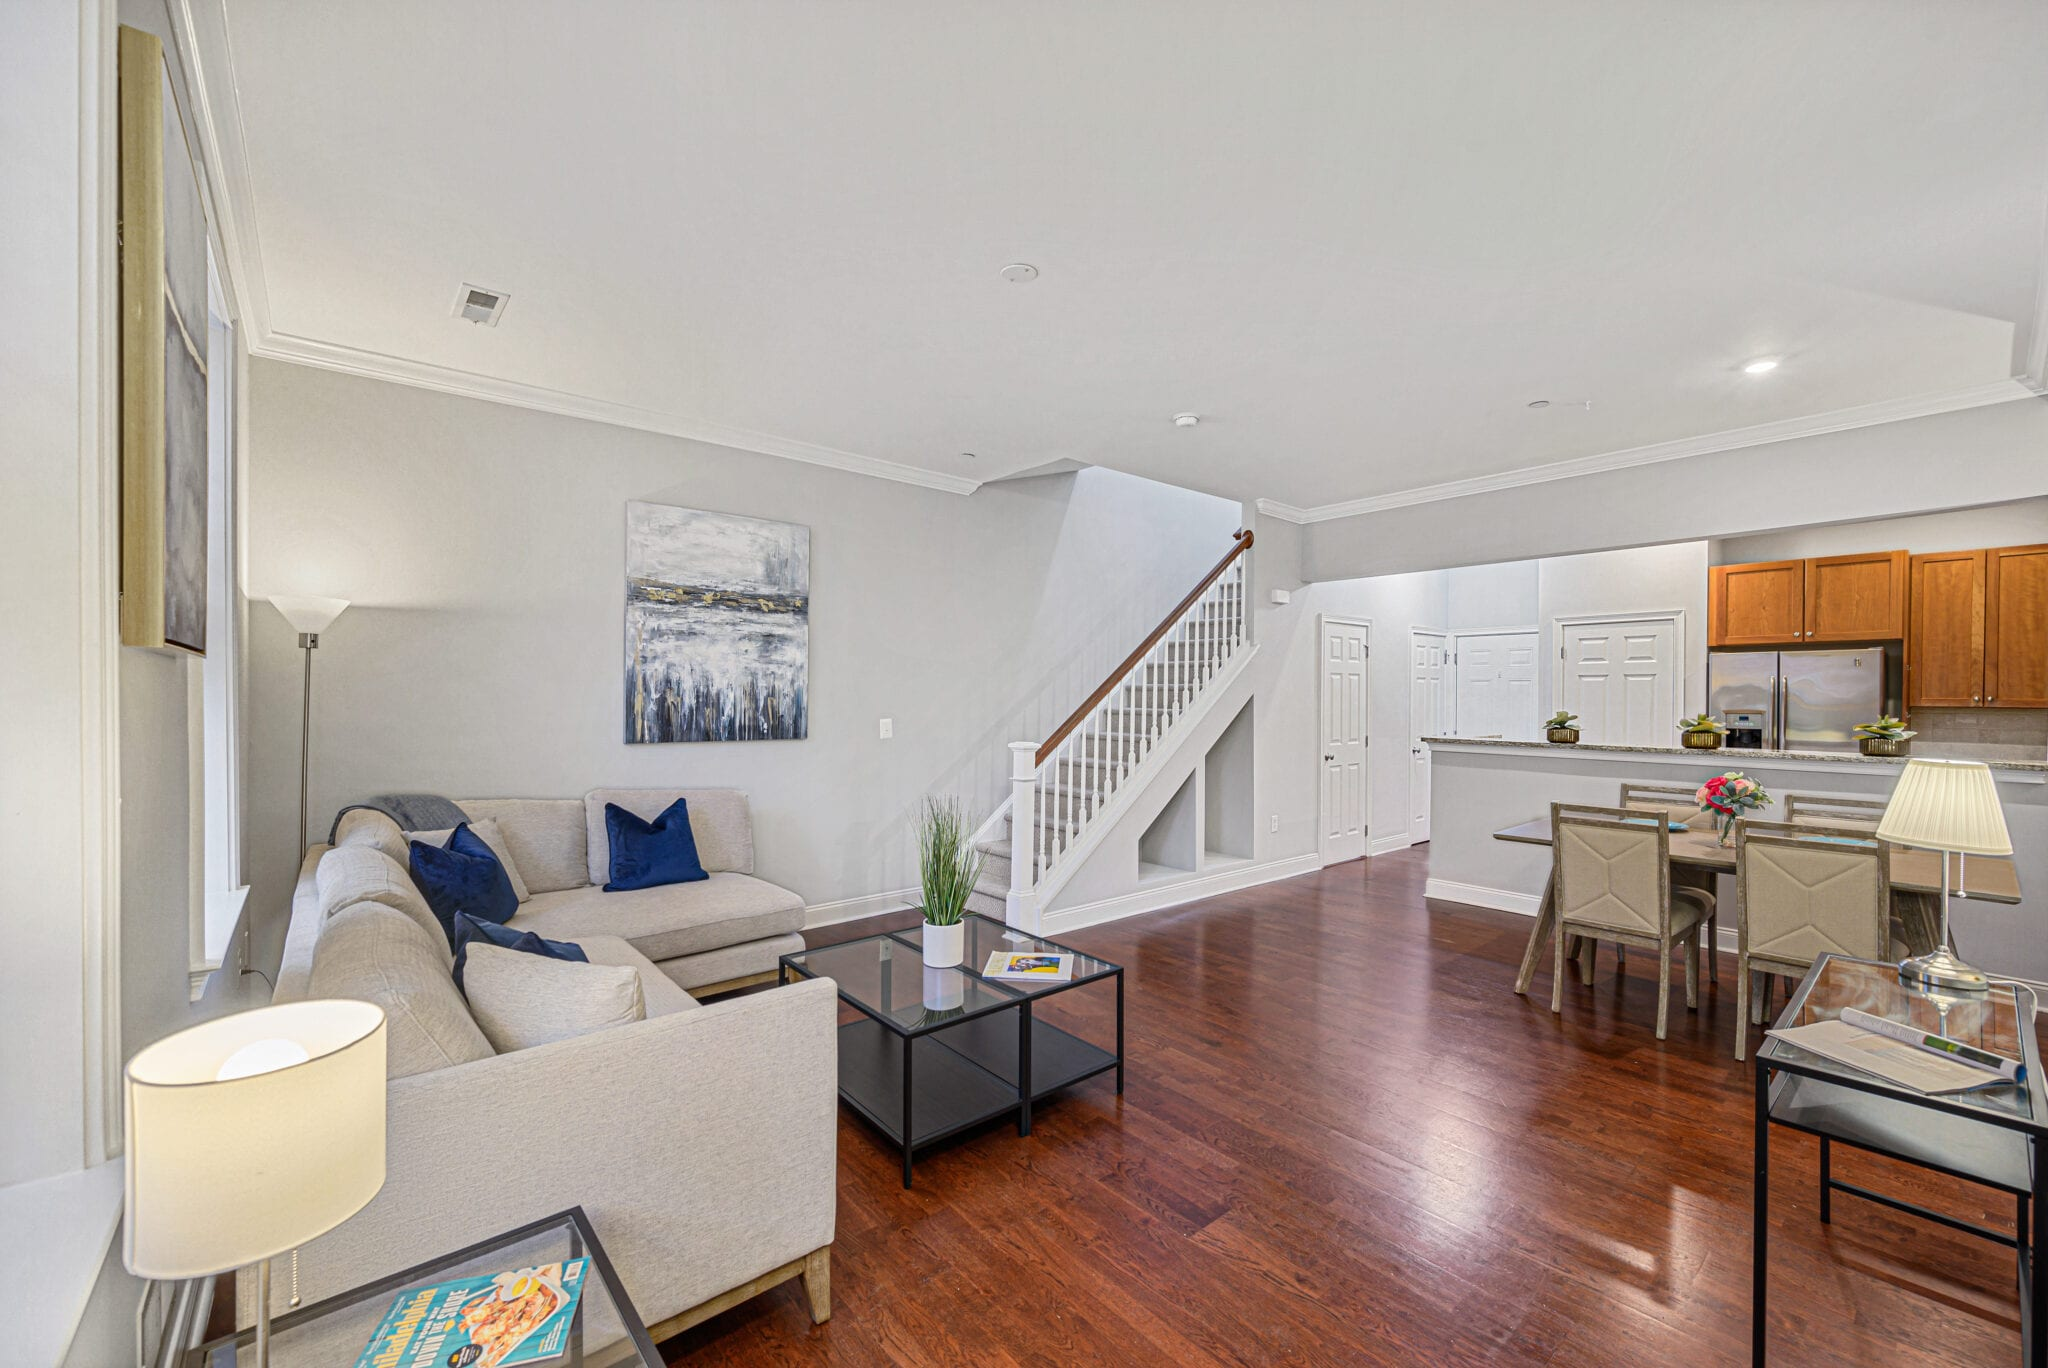 REAL ESTATE PHOTOGRAPHY CHESTER COUNTY DELAWARE COUNTY MONTGOMERY COUNTY-1